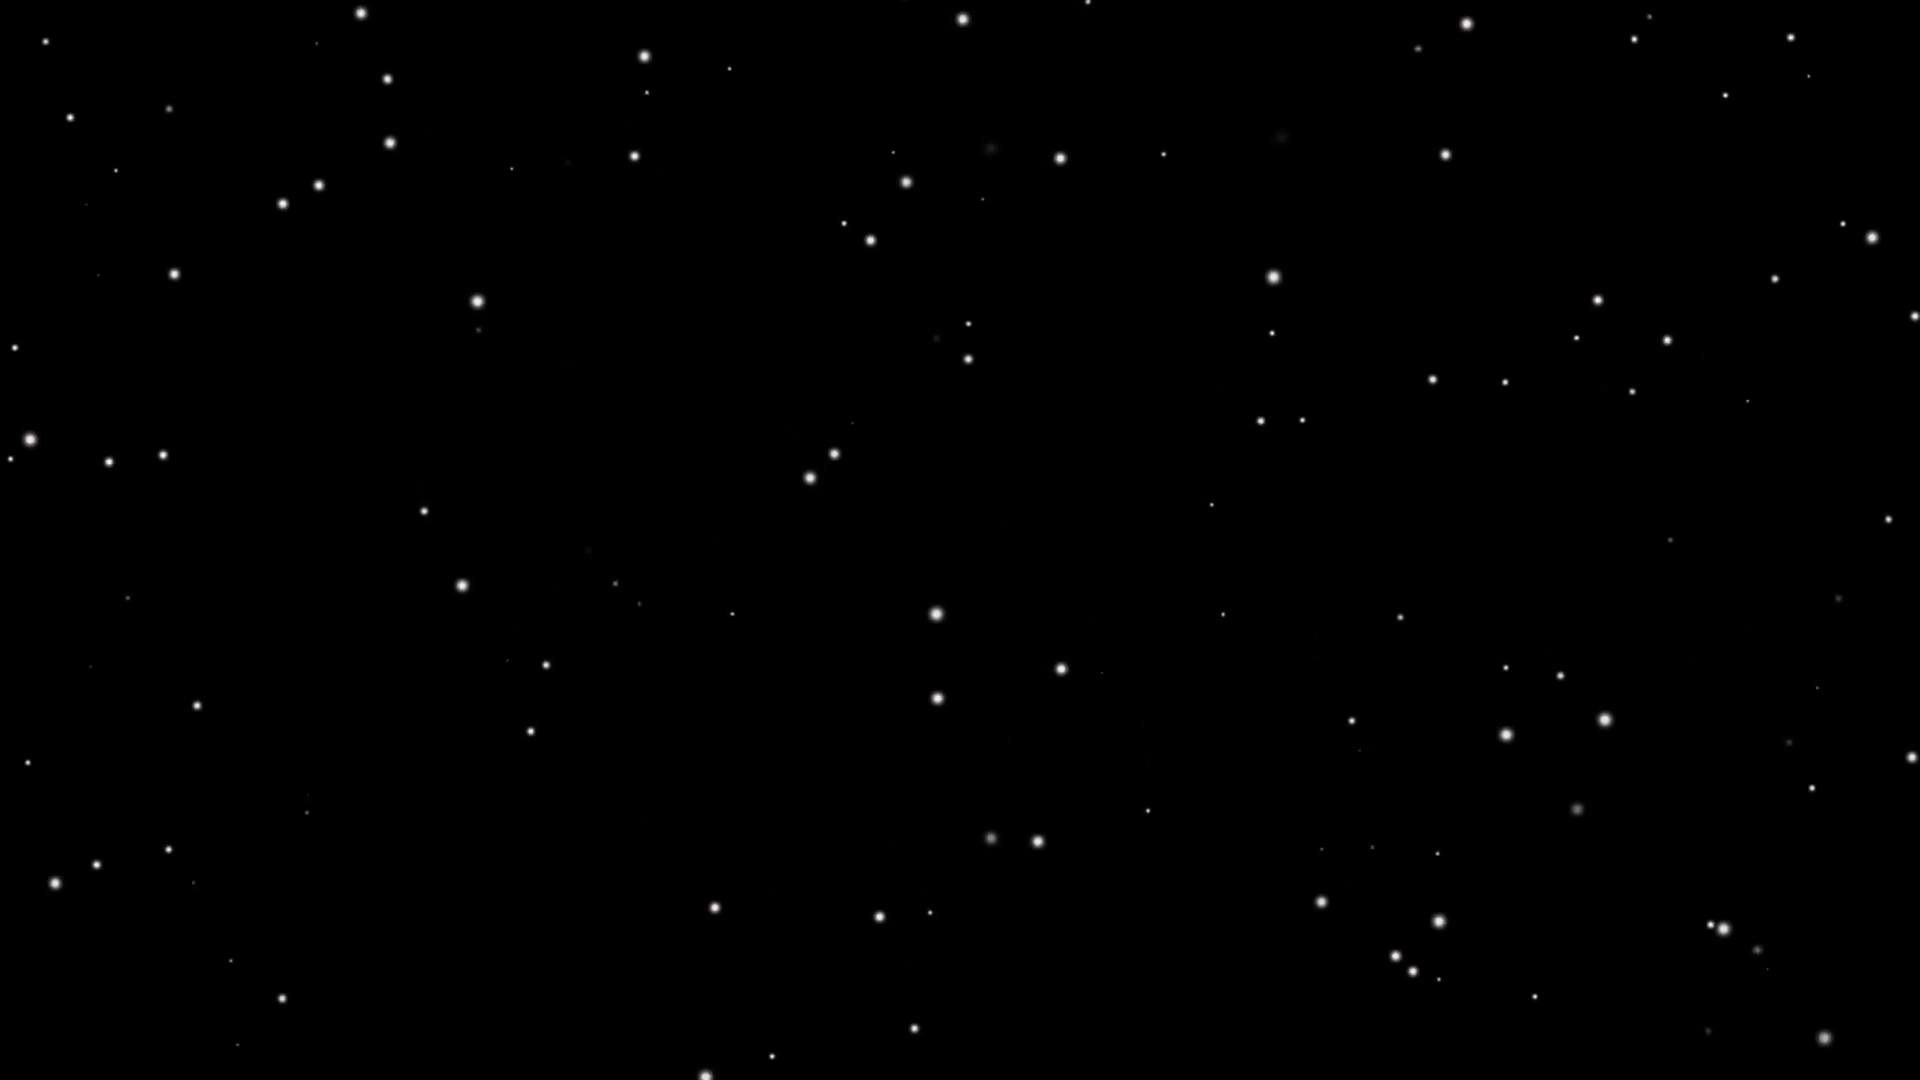 moving stars on black background motion background - videoblocks